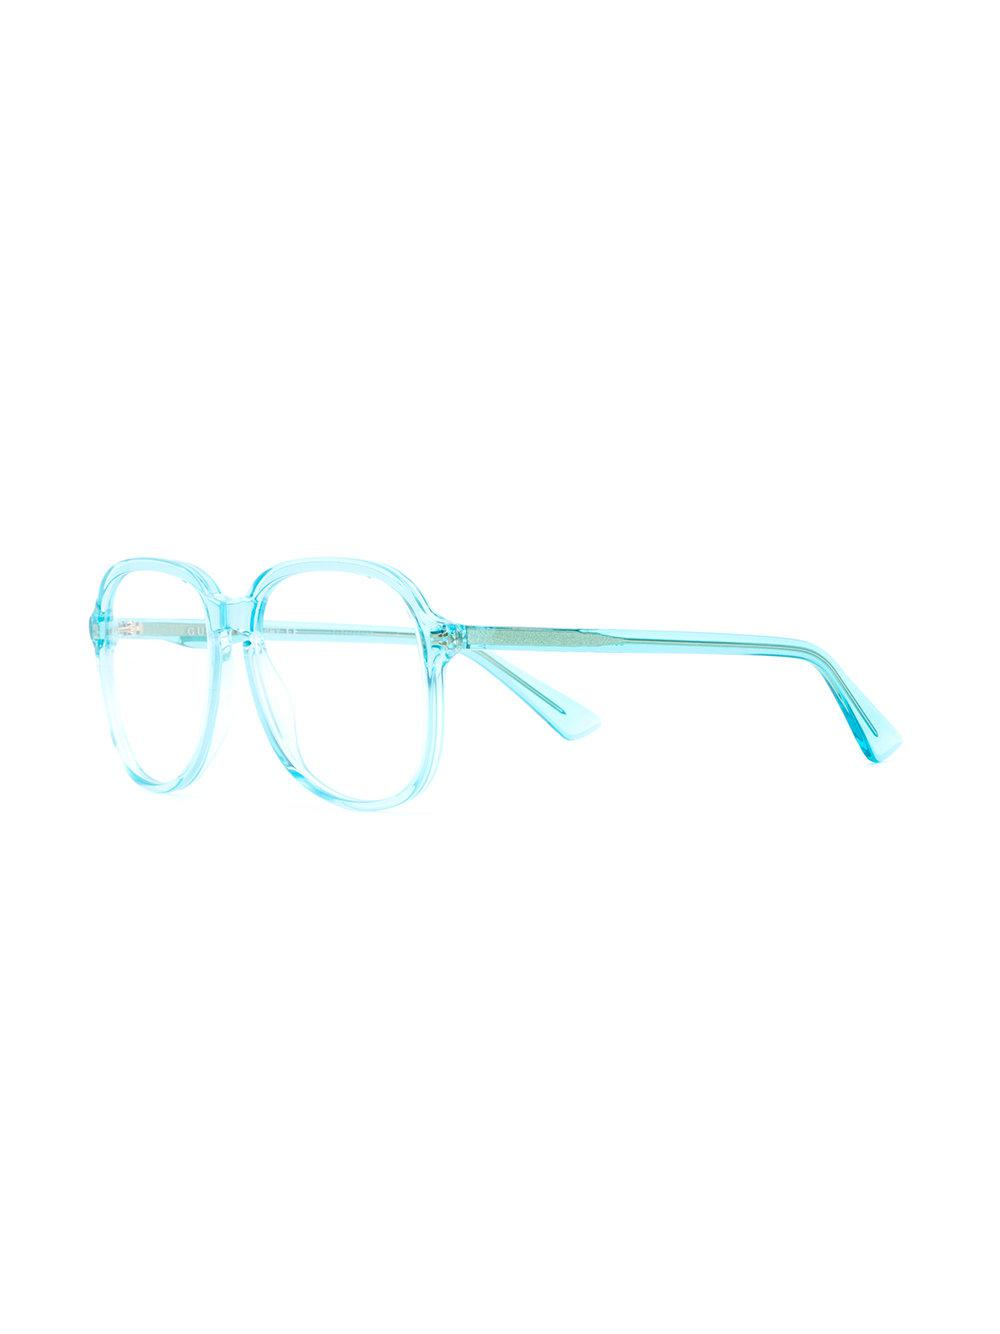 970bc4463d Gucci Clear Oversized Glasses in Blue - Lyst